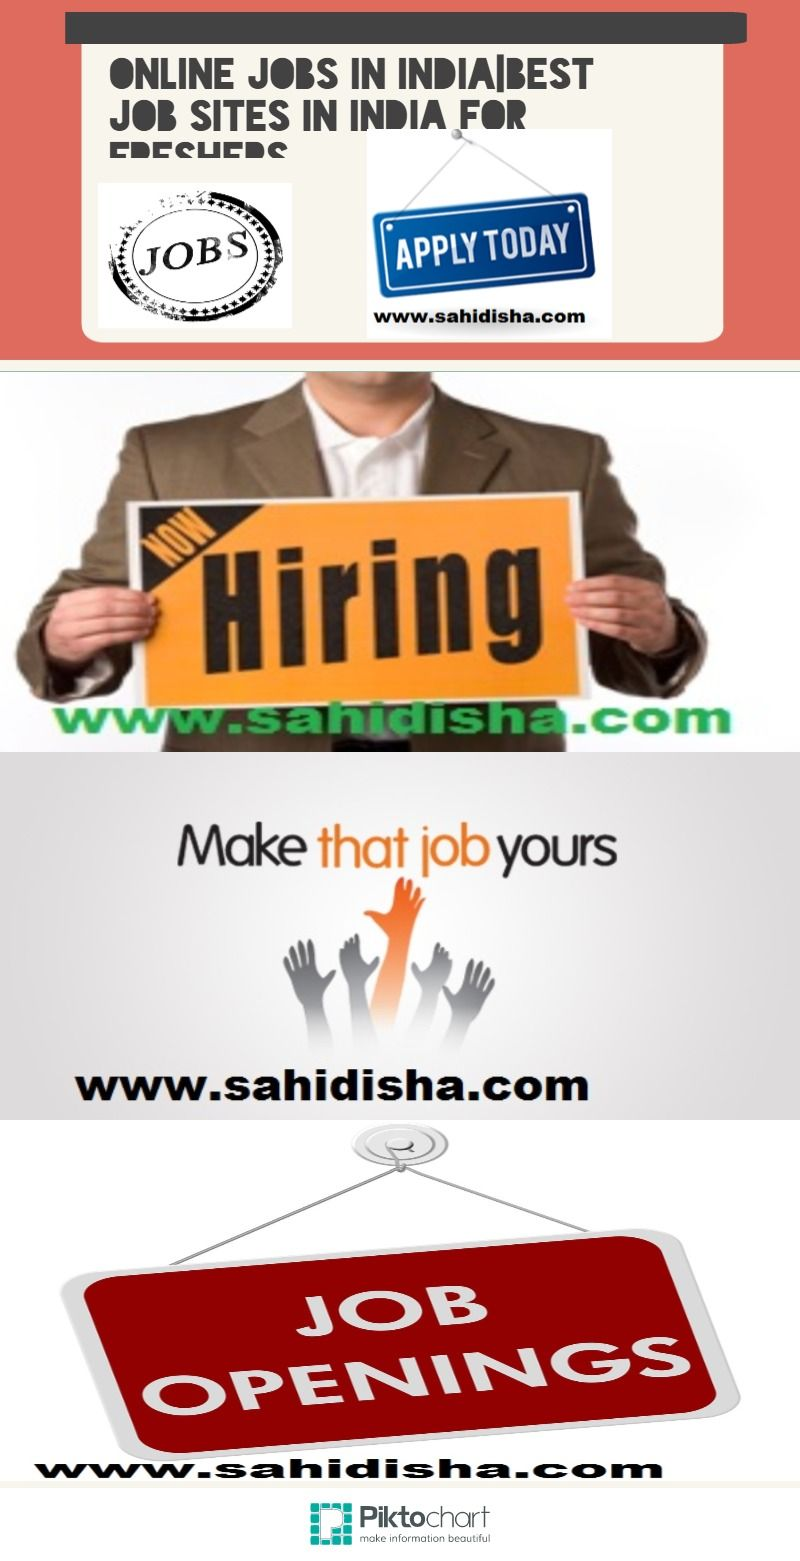 Pin on Online Jobs in India